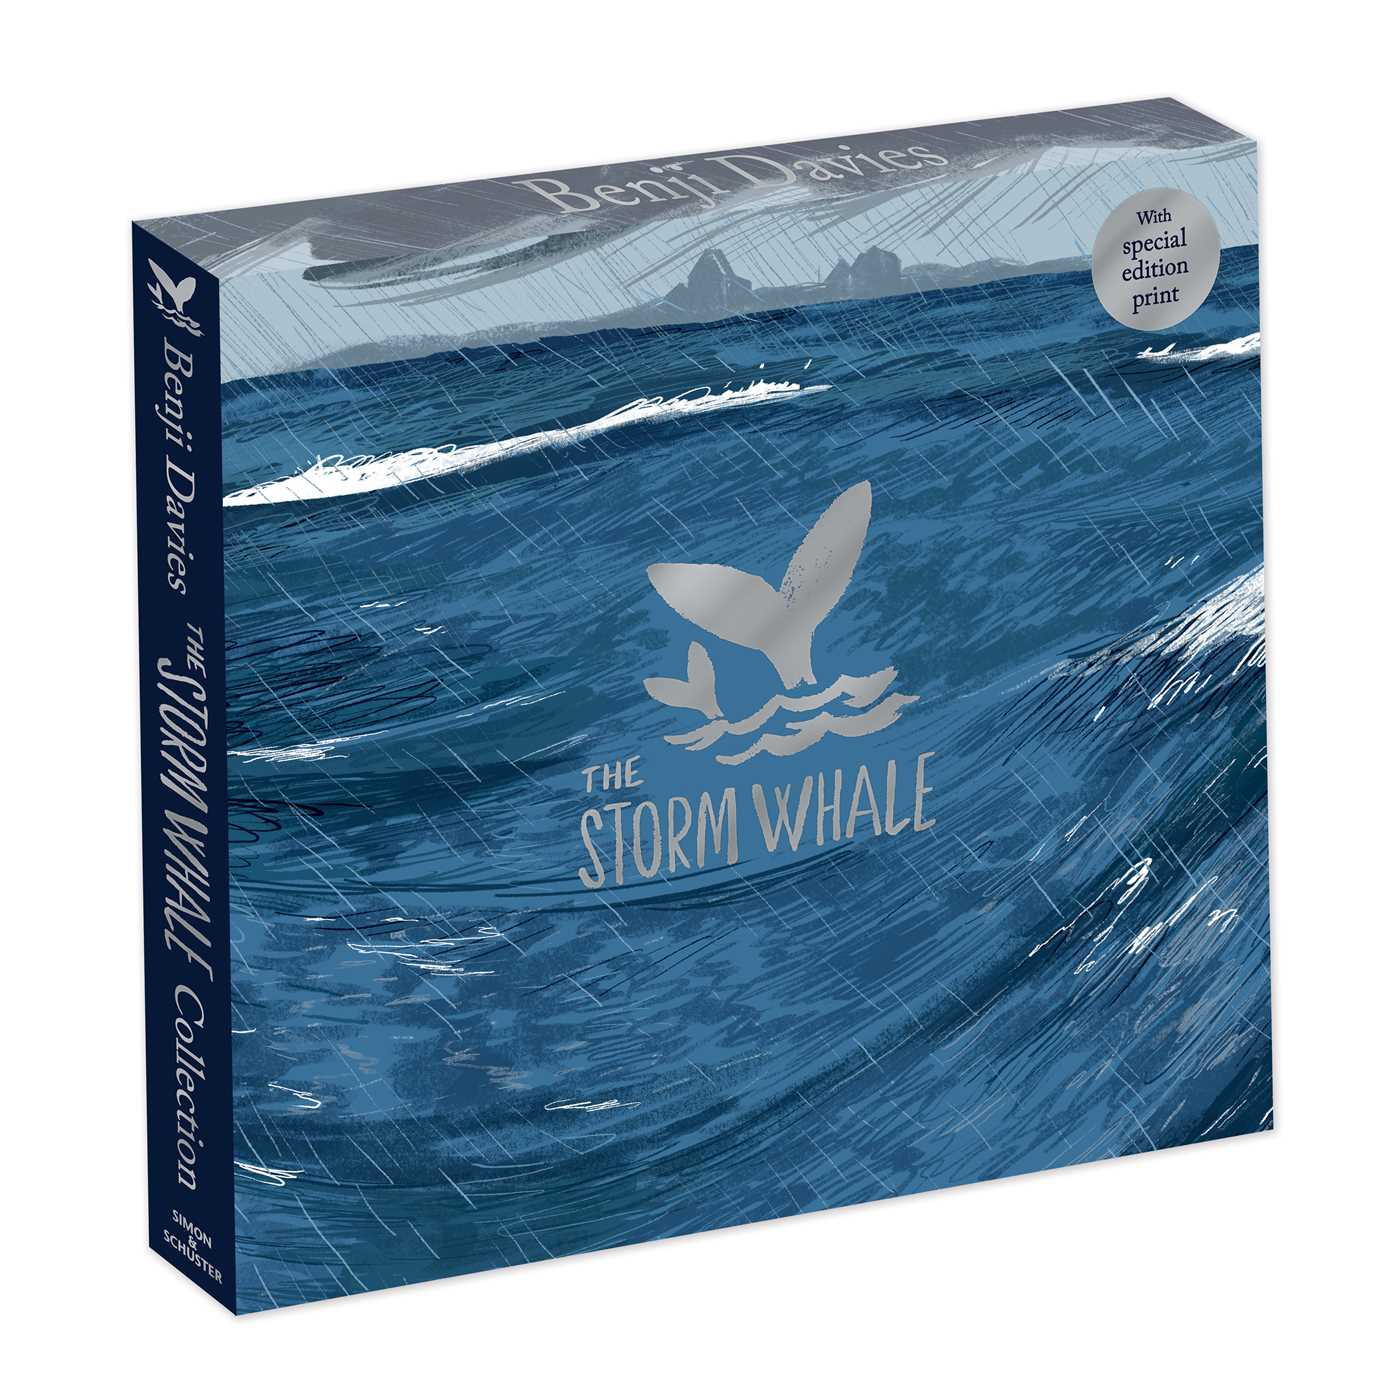 The storm whale slipcase 9781471161728 hr